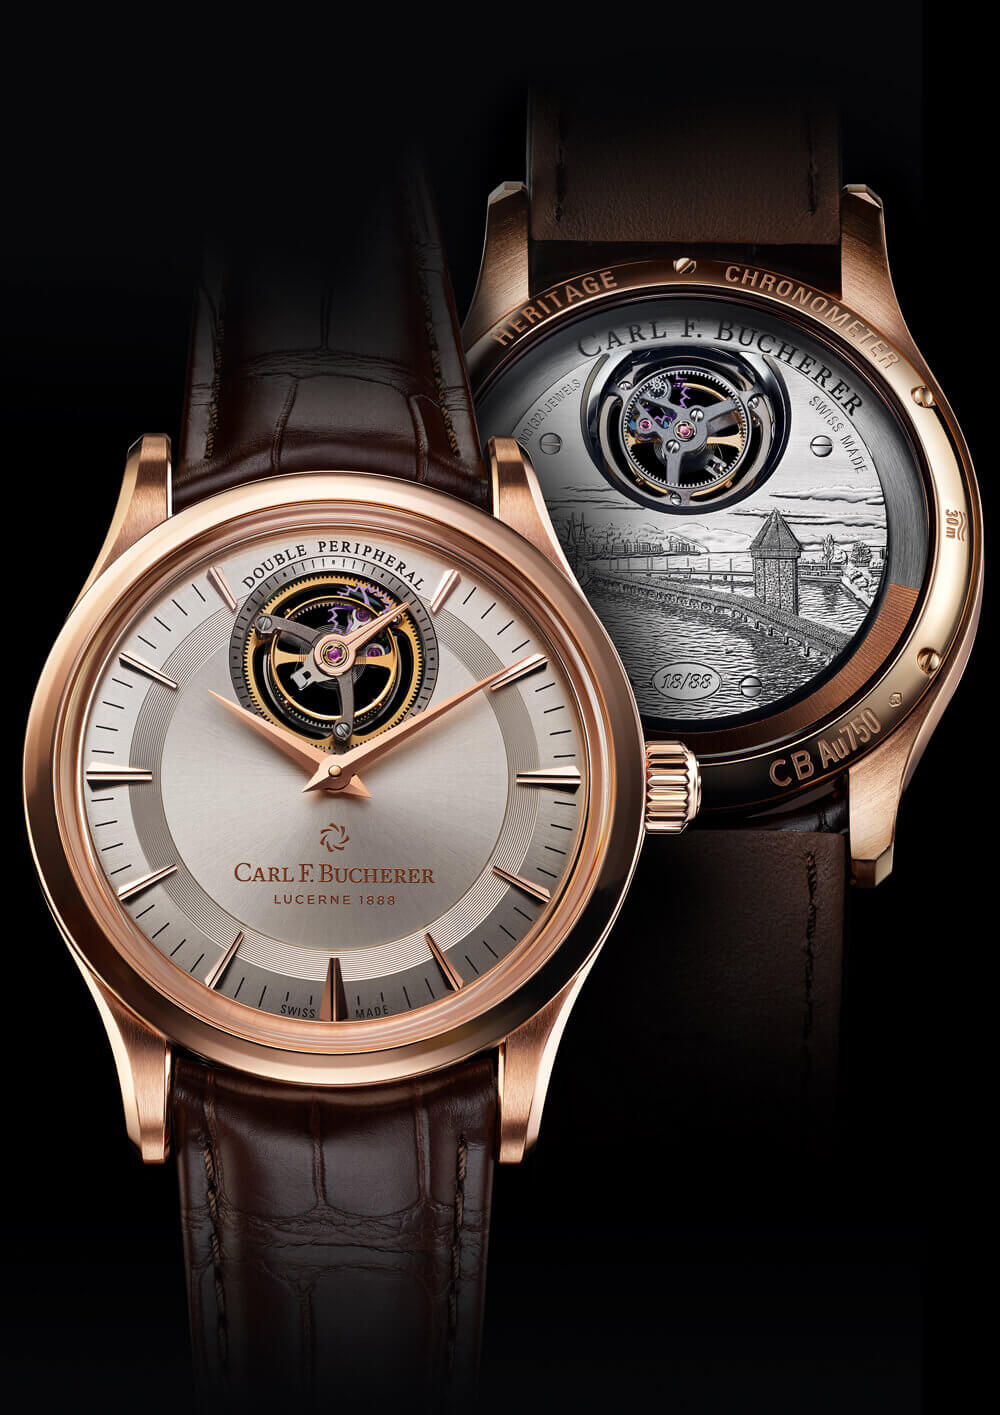 Carl F. Bucherer Heritage Tourbillon Double Peripheral Limited Edition